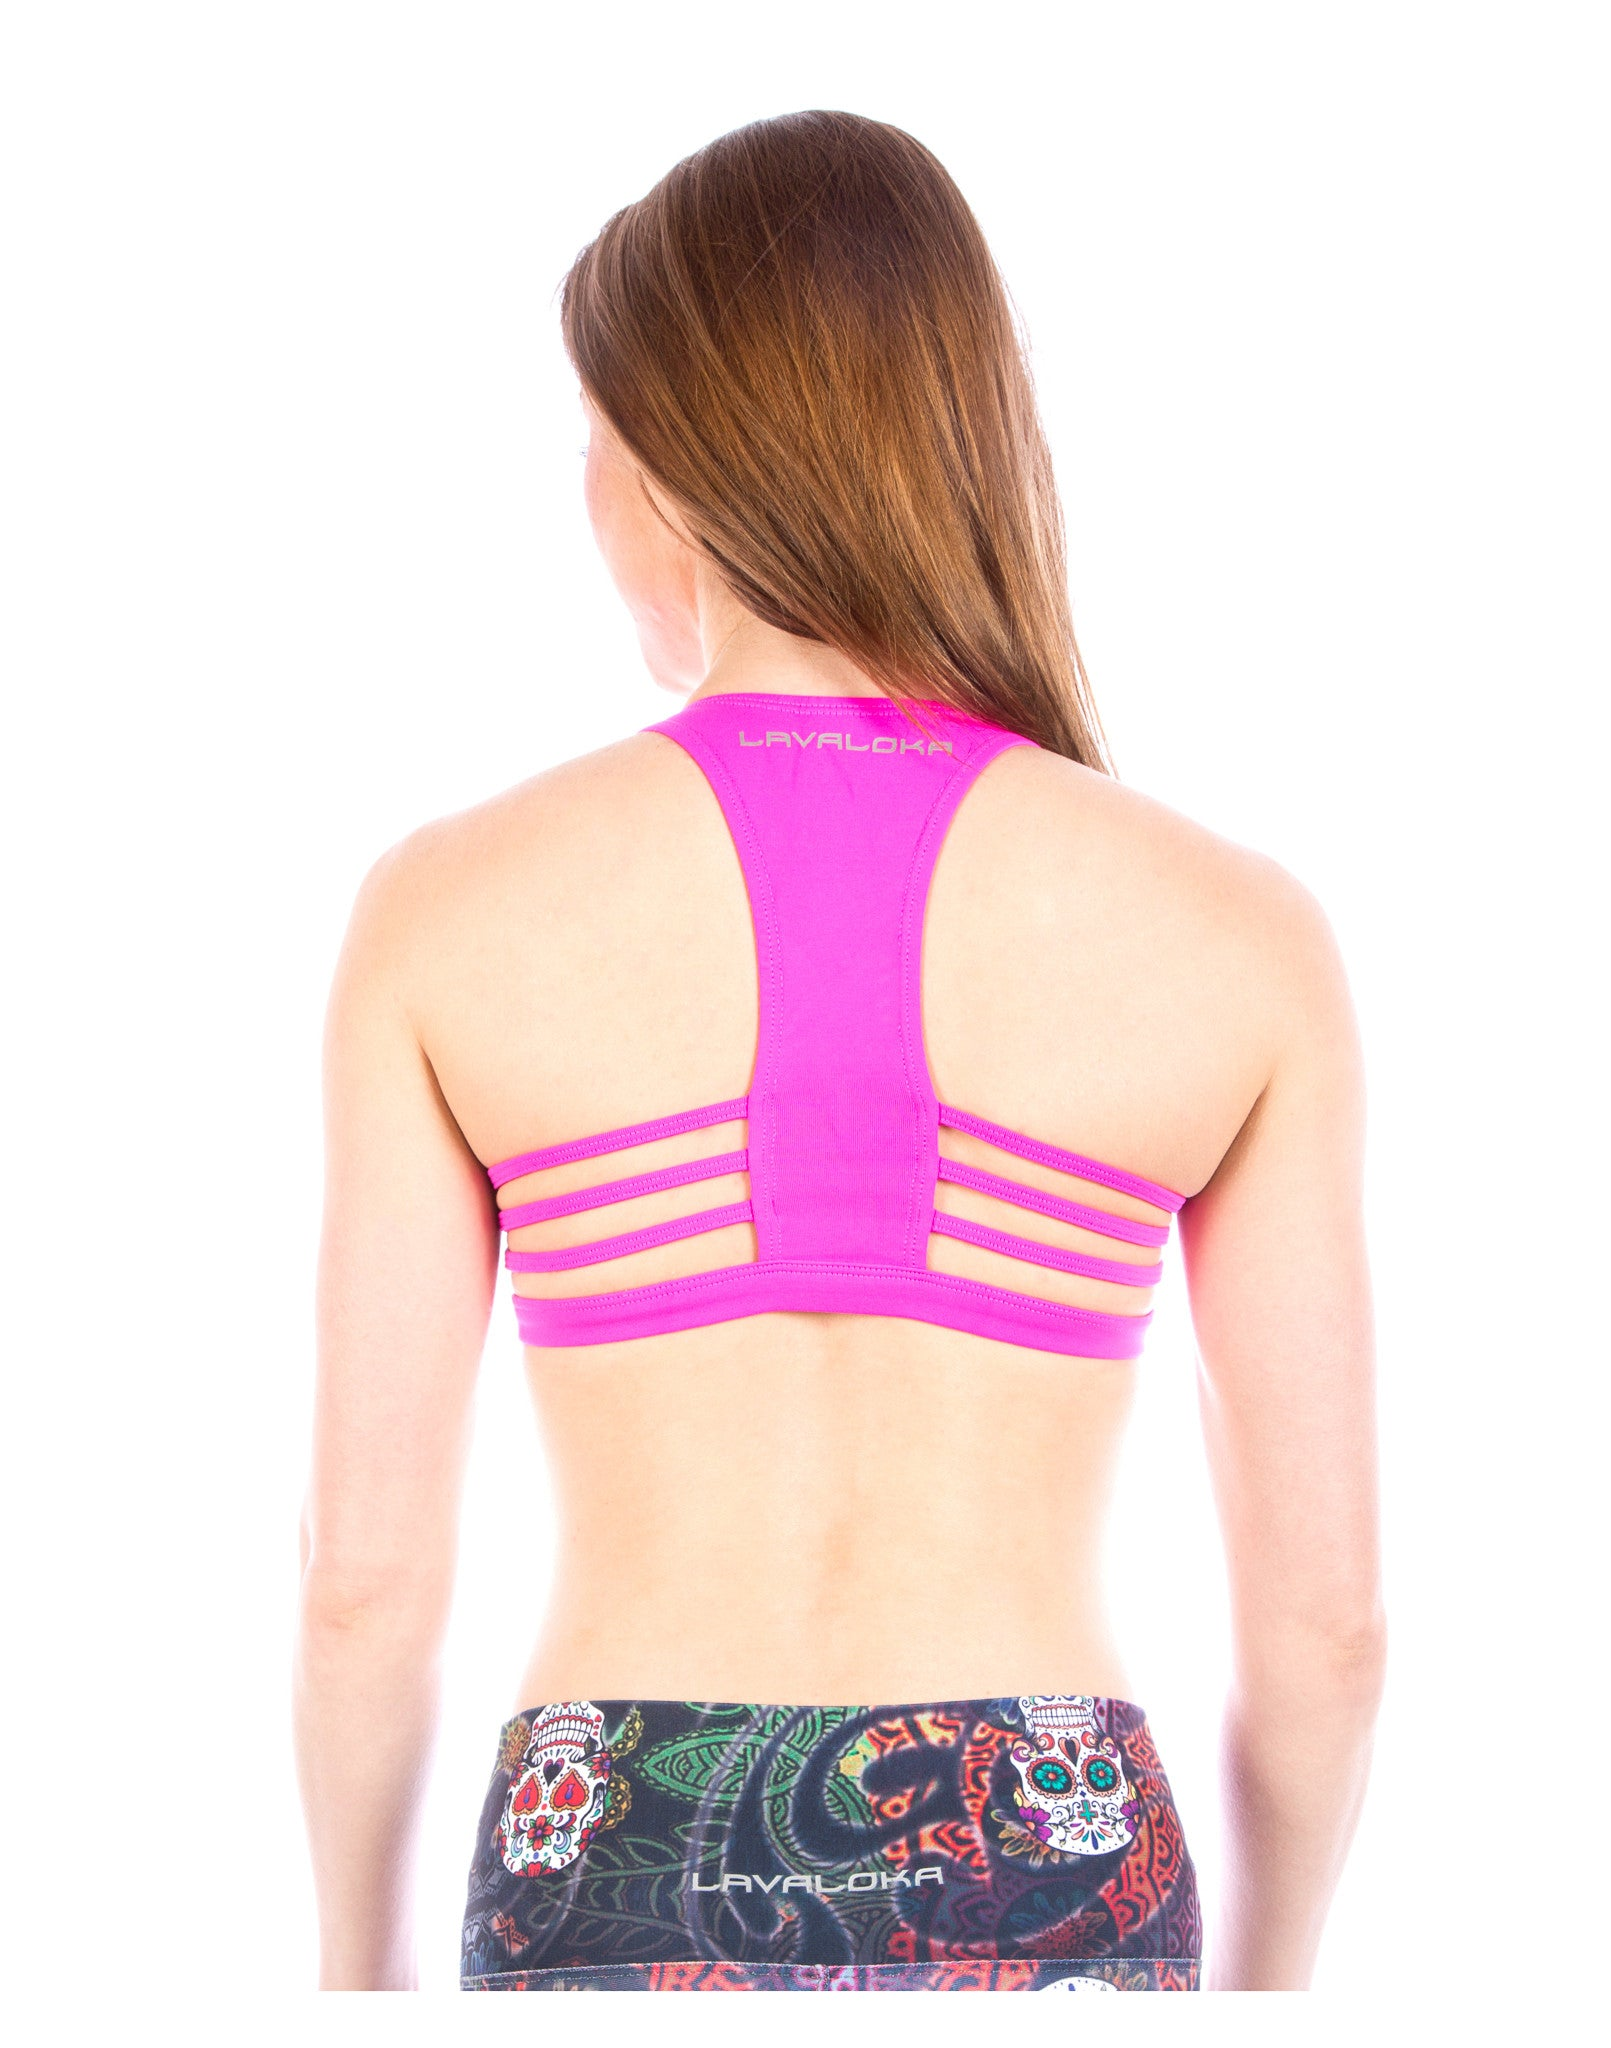 Maria Sports Bra - Sports Bra Collection LavaLoka - Pink - buy now in every color